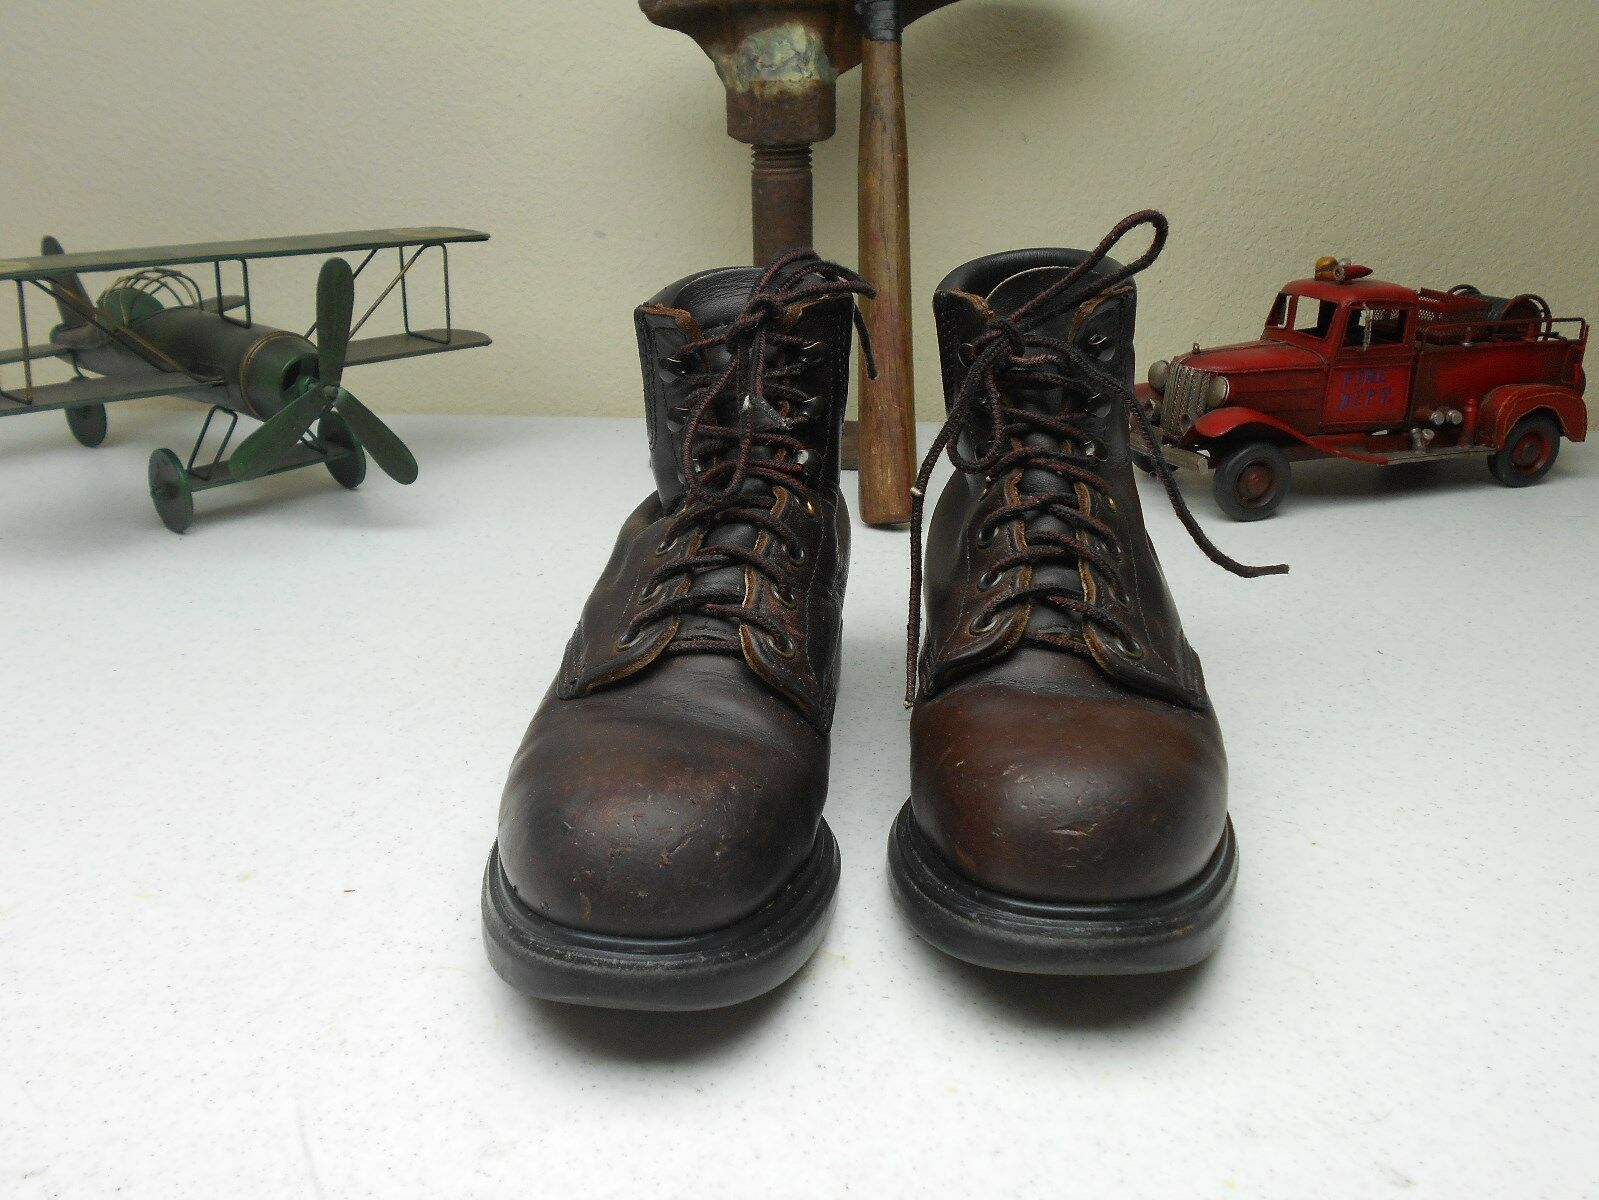 BROWN STEEL TOE RED WING LEATHER LACE UP PACKER WORK CHORE FARM BOOTS 5.5 C/D?